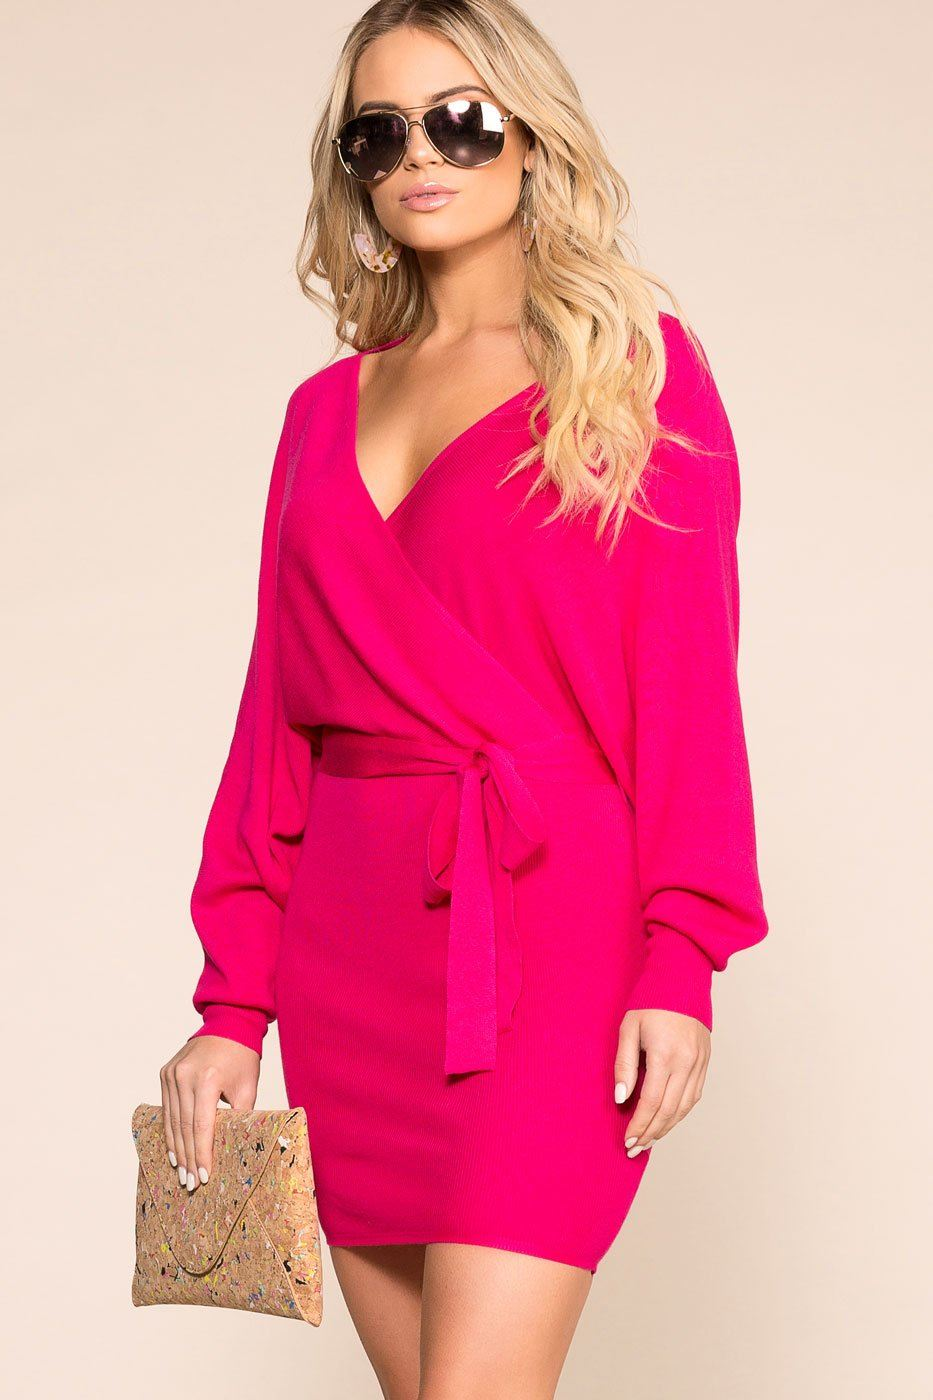 Wife Dresses To Impress  Hot Pink Wrap Dress